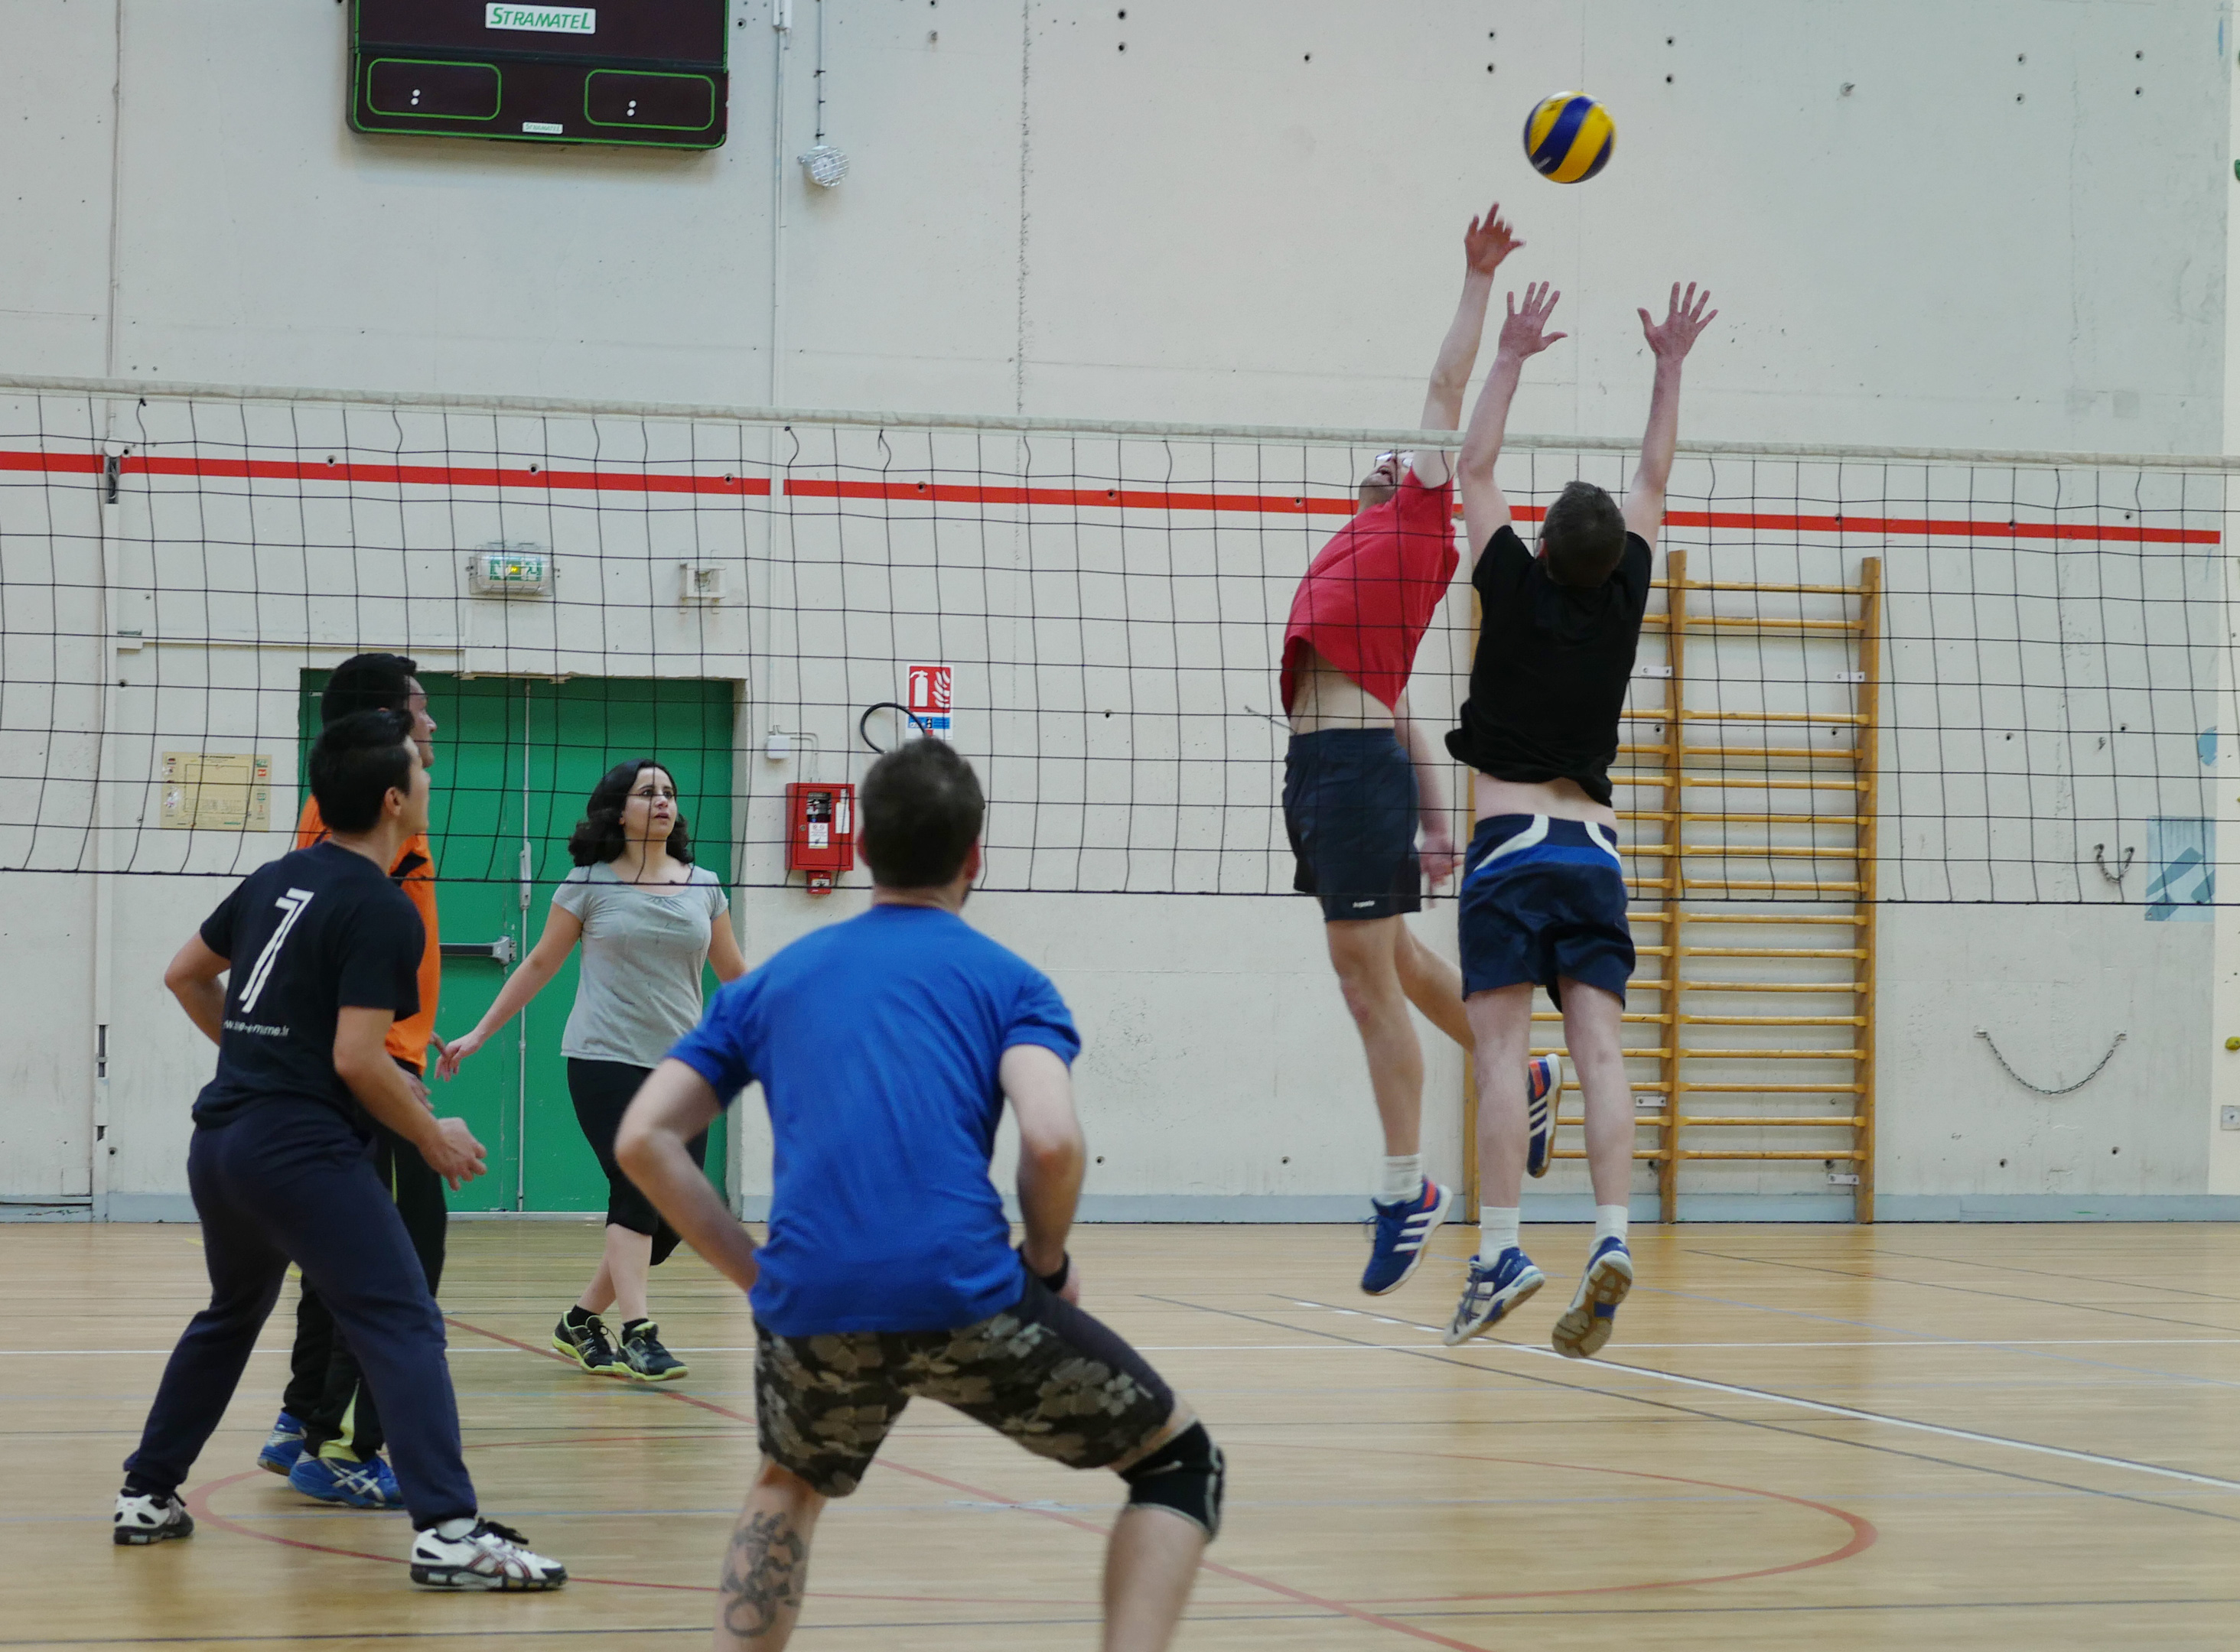 Tournoi Volley USMA 2015-51.JPG